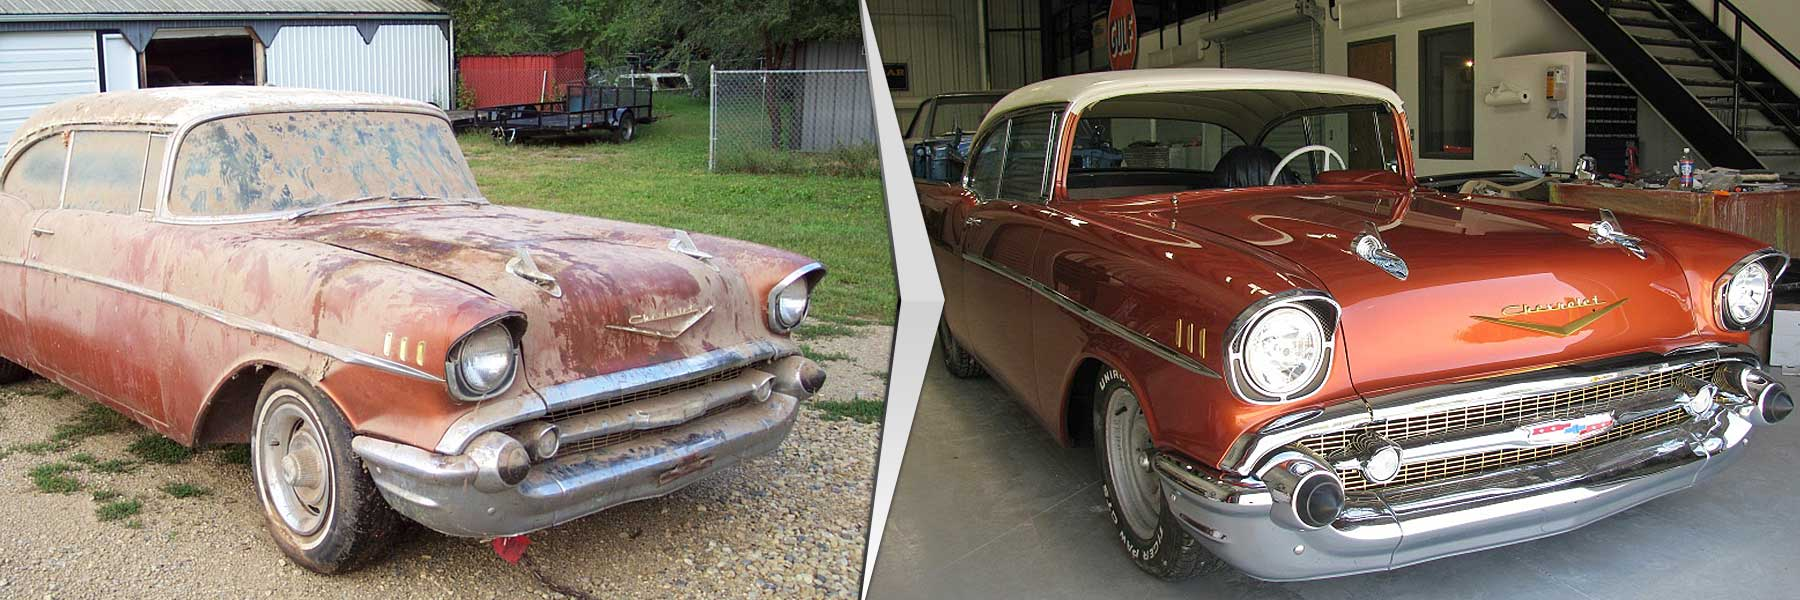 Is It Viable to Restore A Classic Car Yourself?